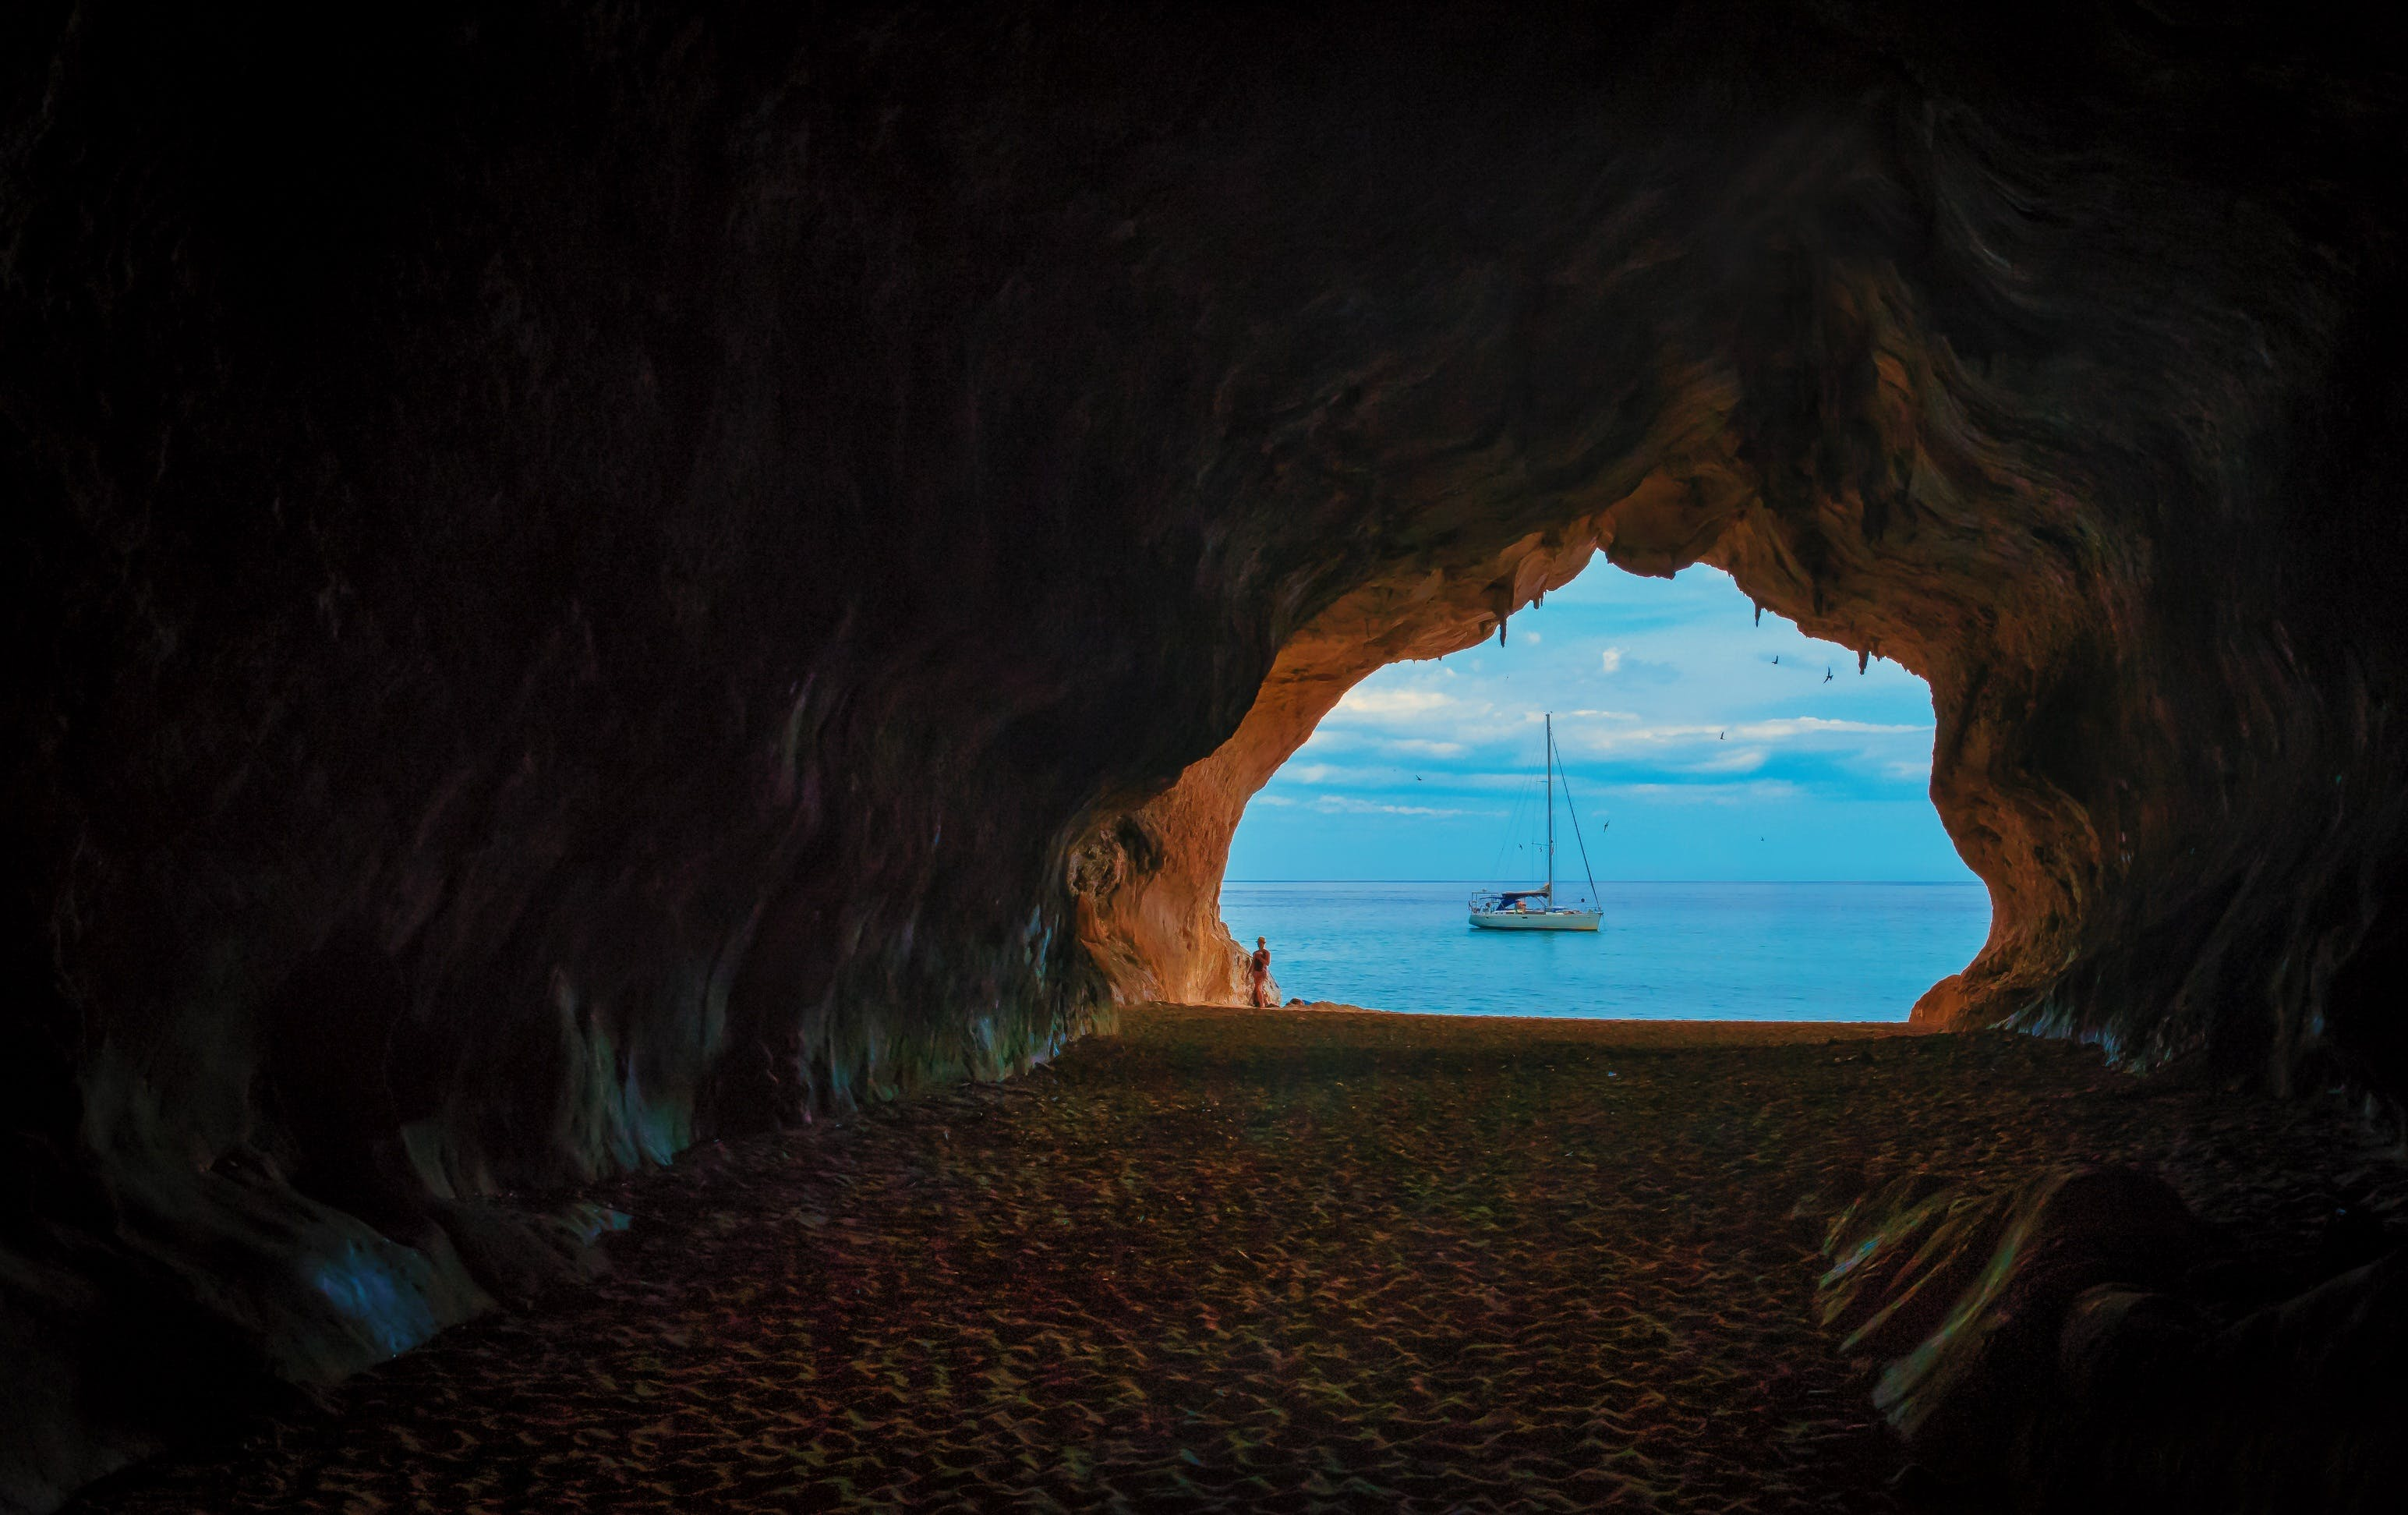 Cave Near Body of Water With Boat